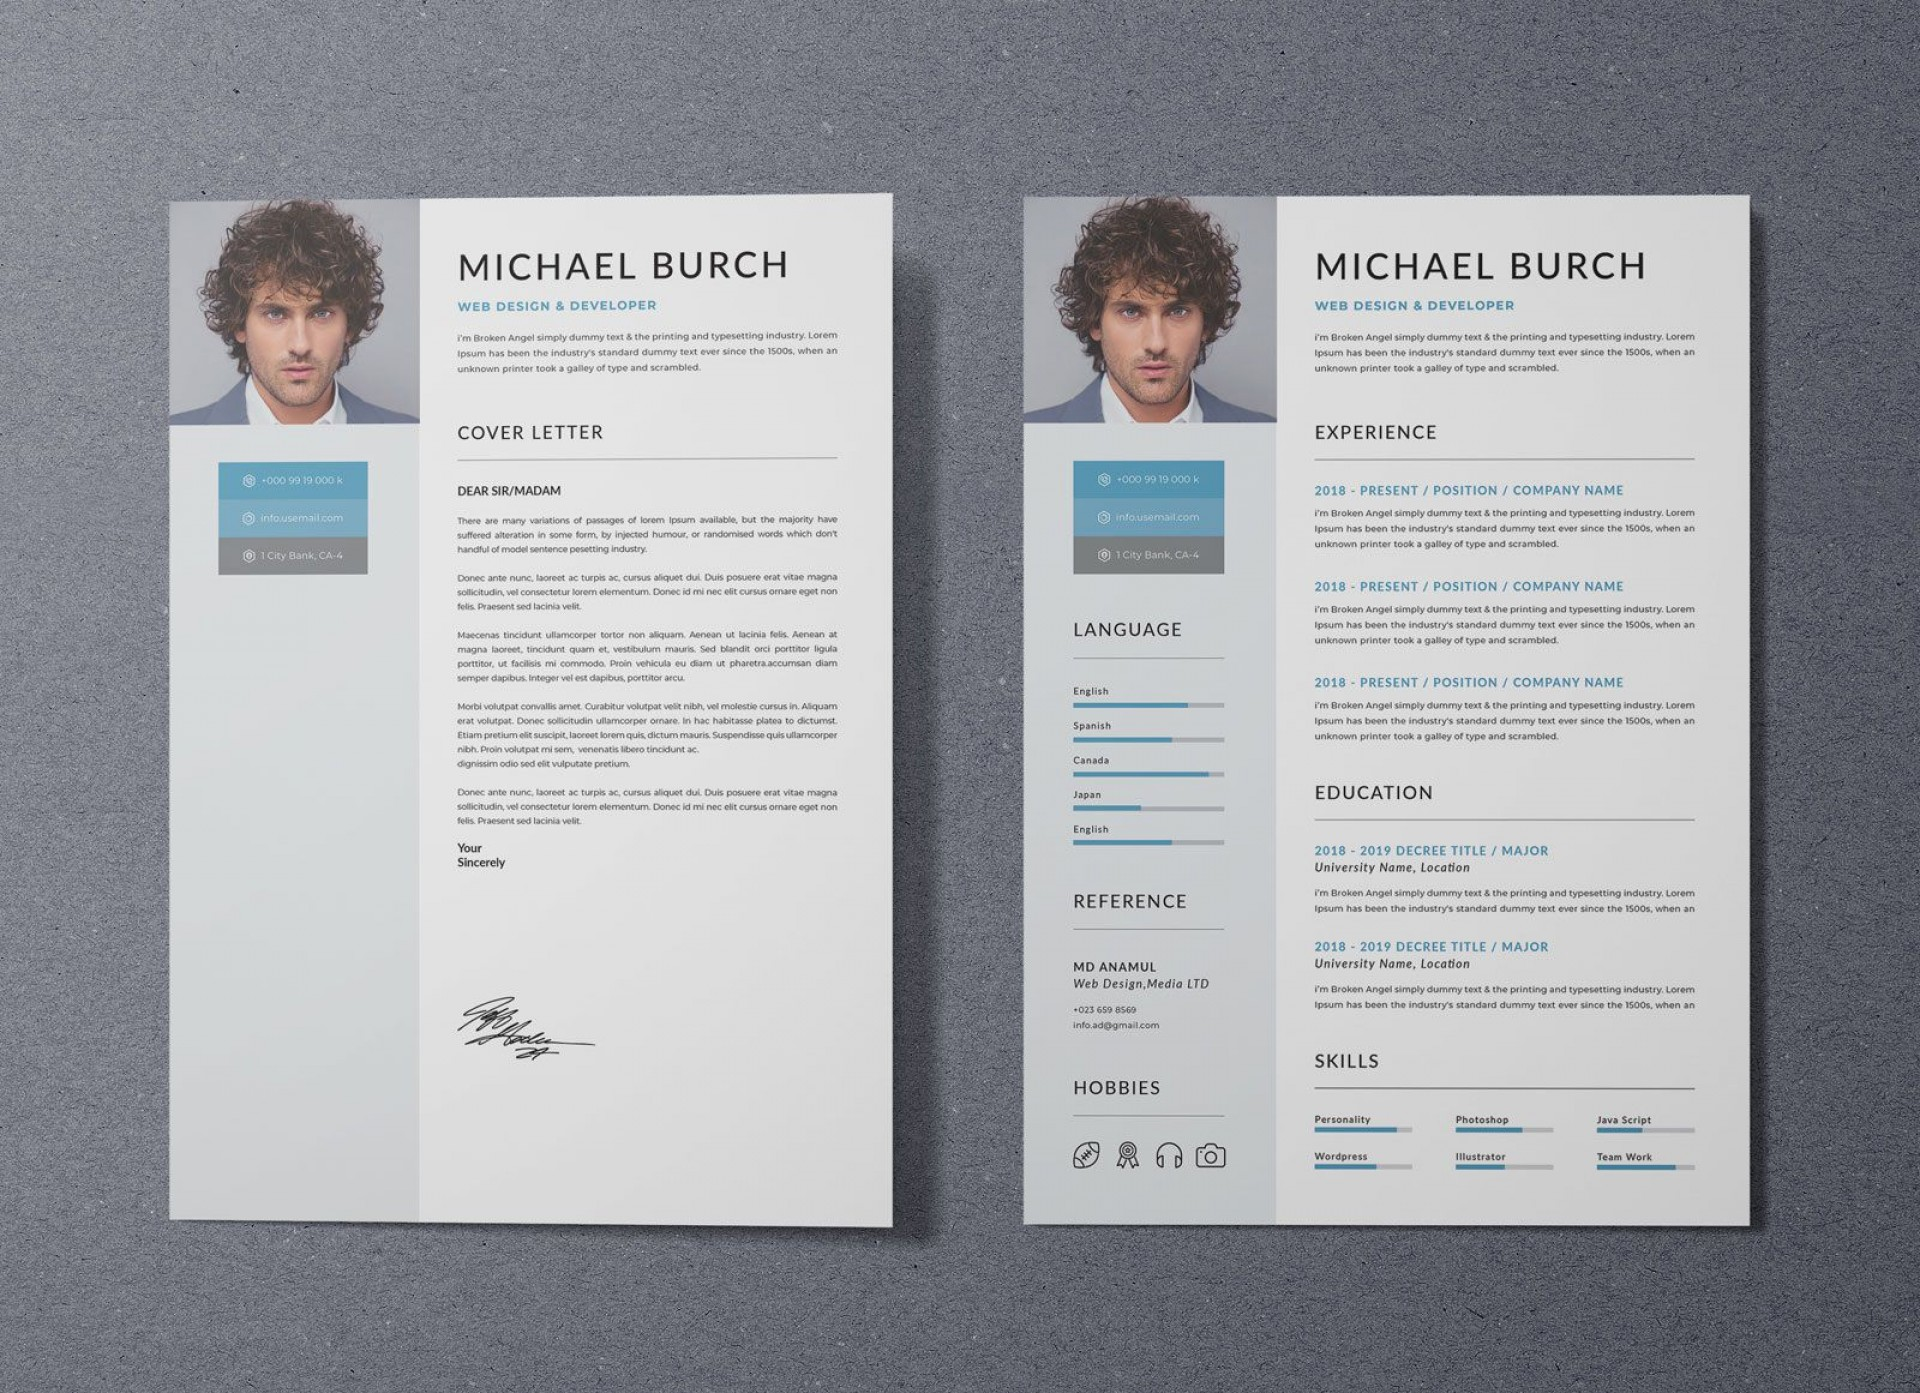 006 Fantastic Free Psd Resume Template Highest Quality  Templates Attractive Download Creative (psd Id) Curriculum Vitae1920